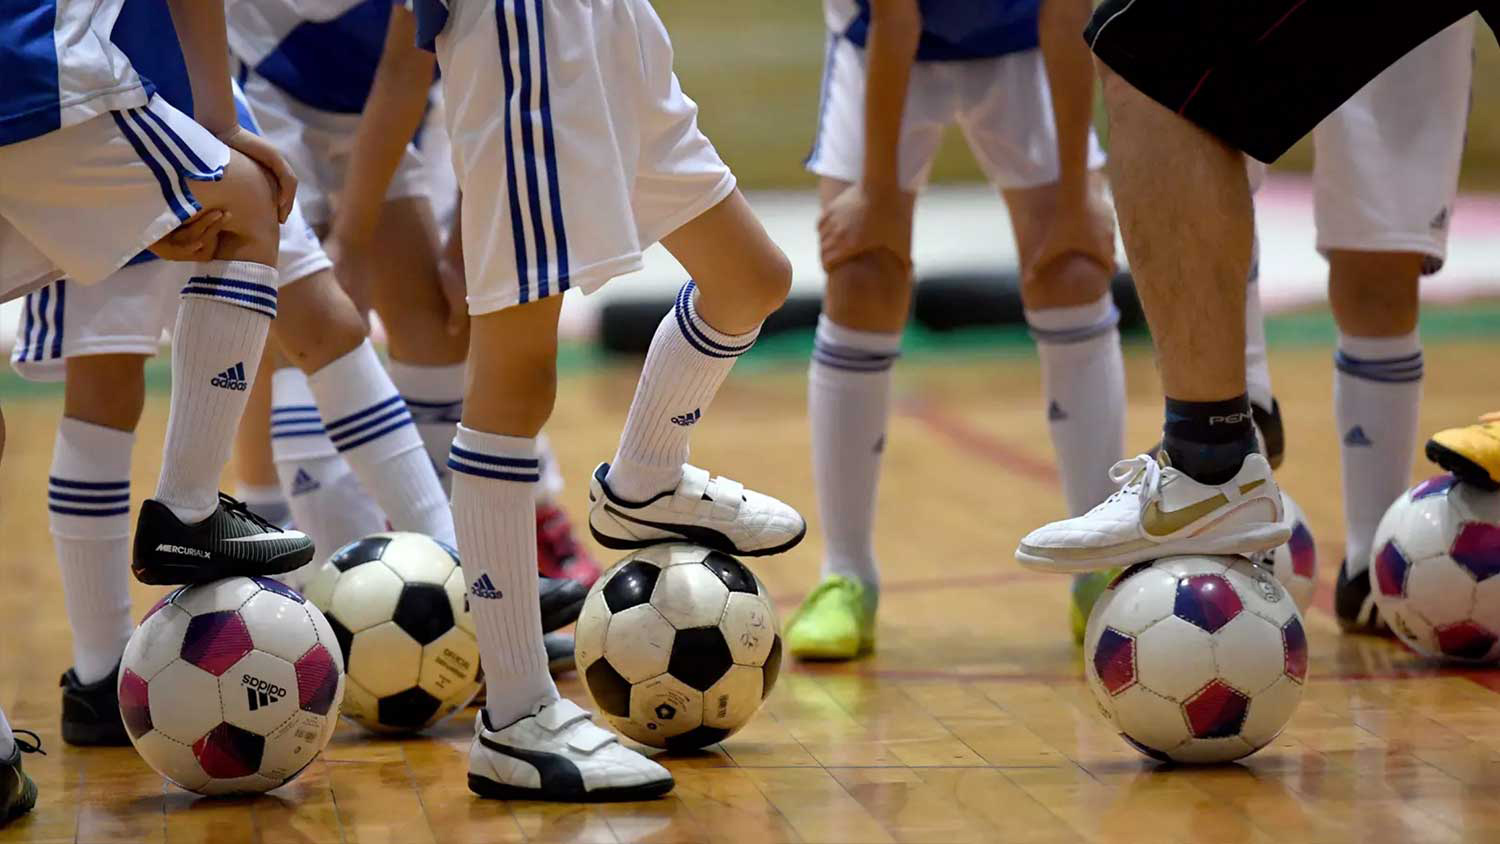 Soccer Sporting Event and Practice - Online and Continuing Education - Parks Recreation and Tourism Management NC State